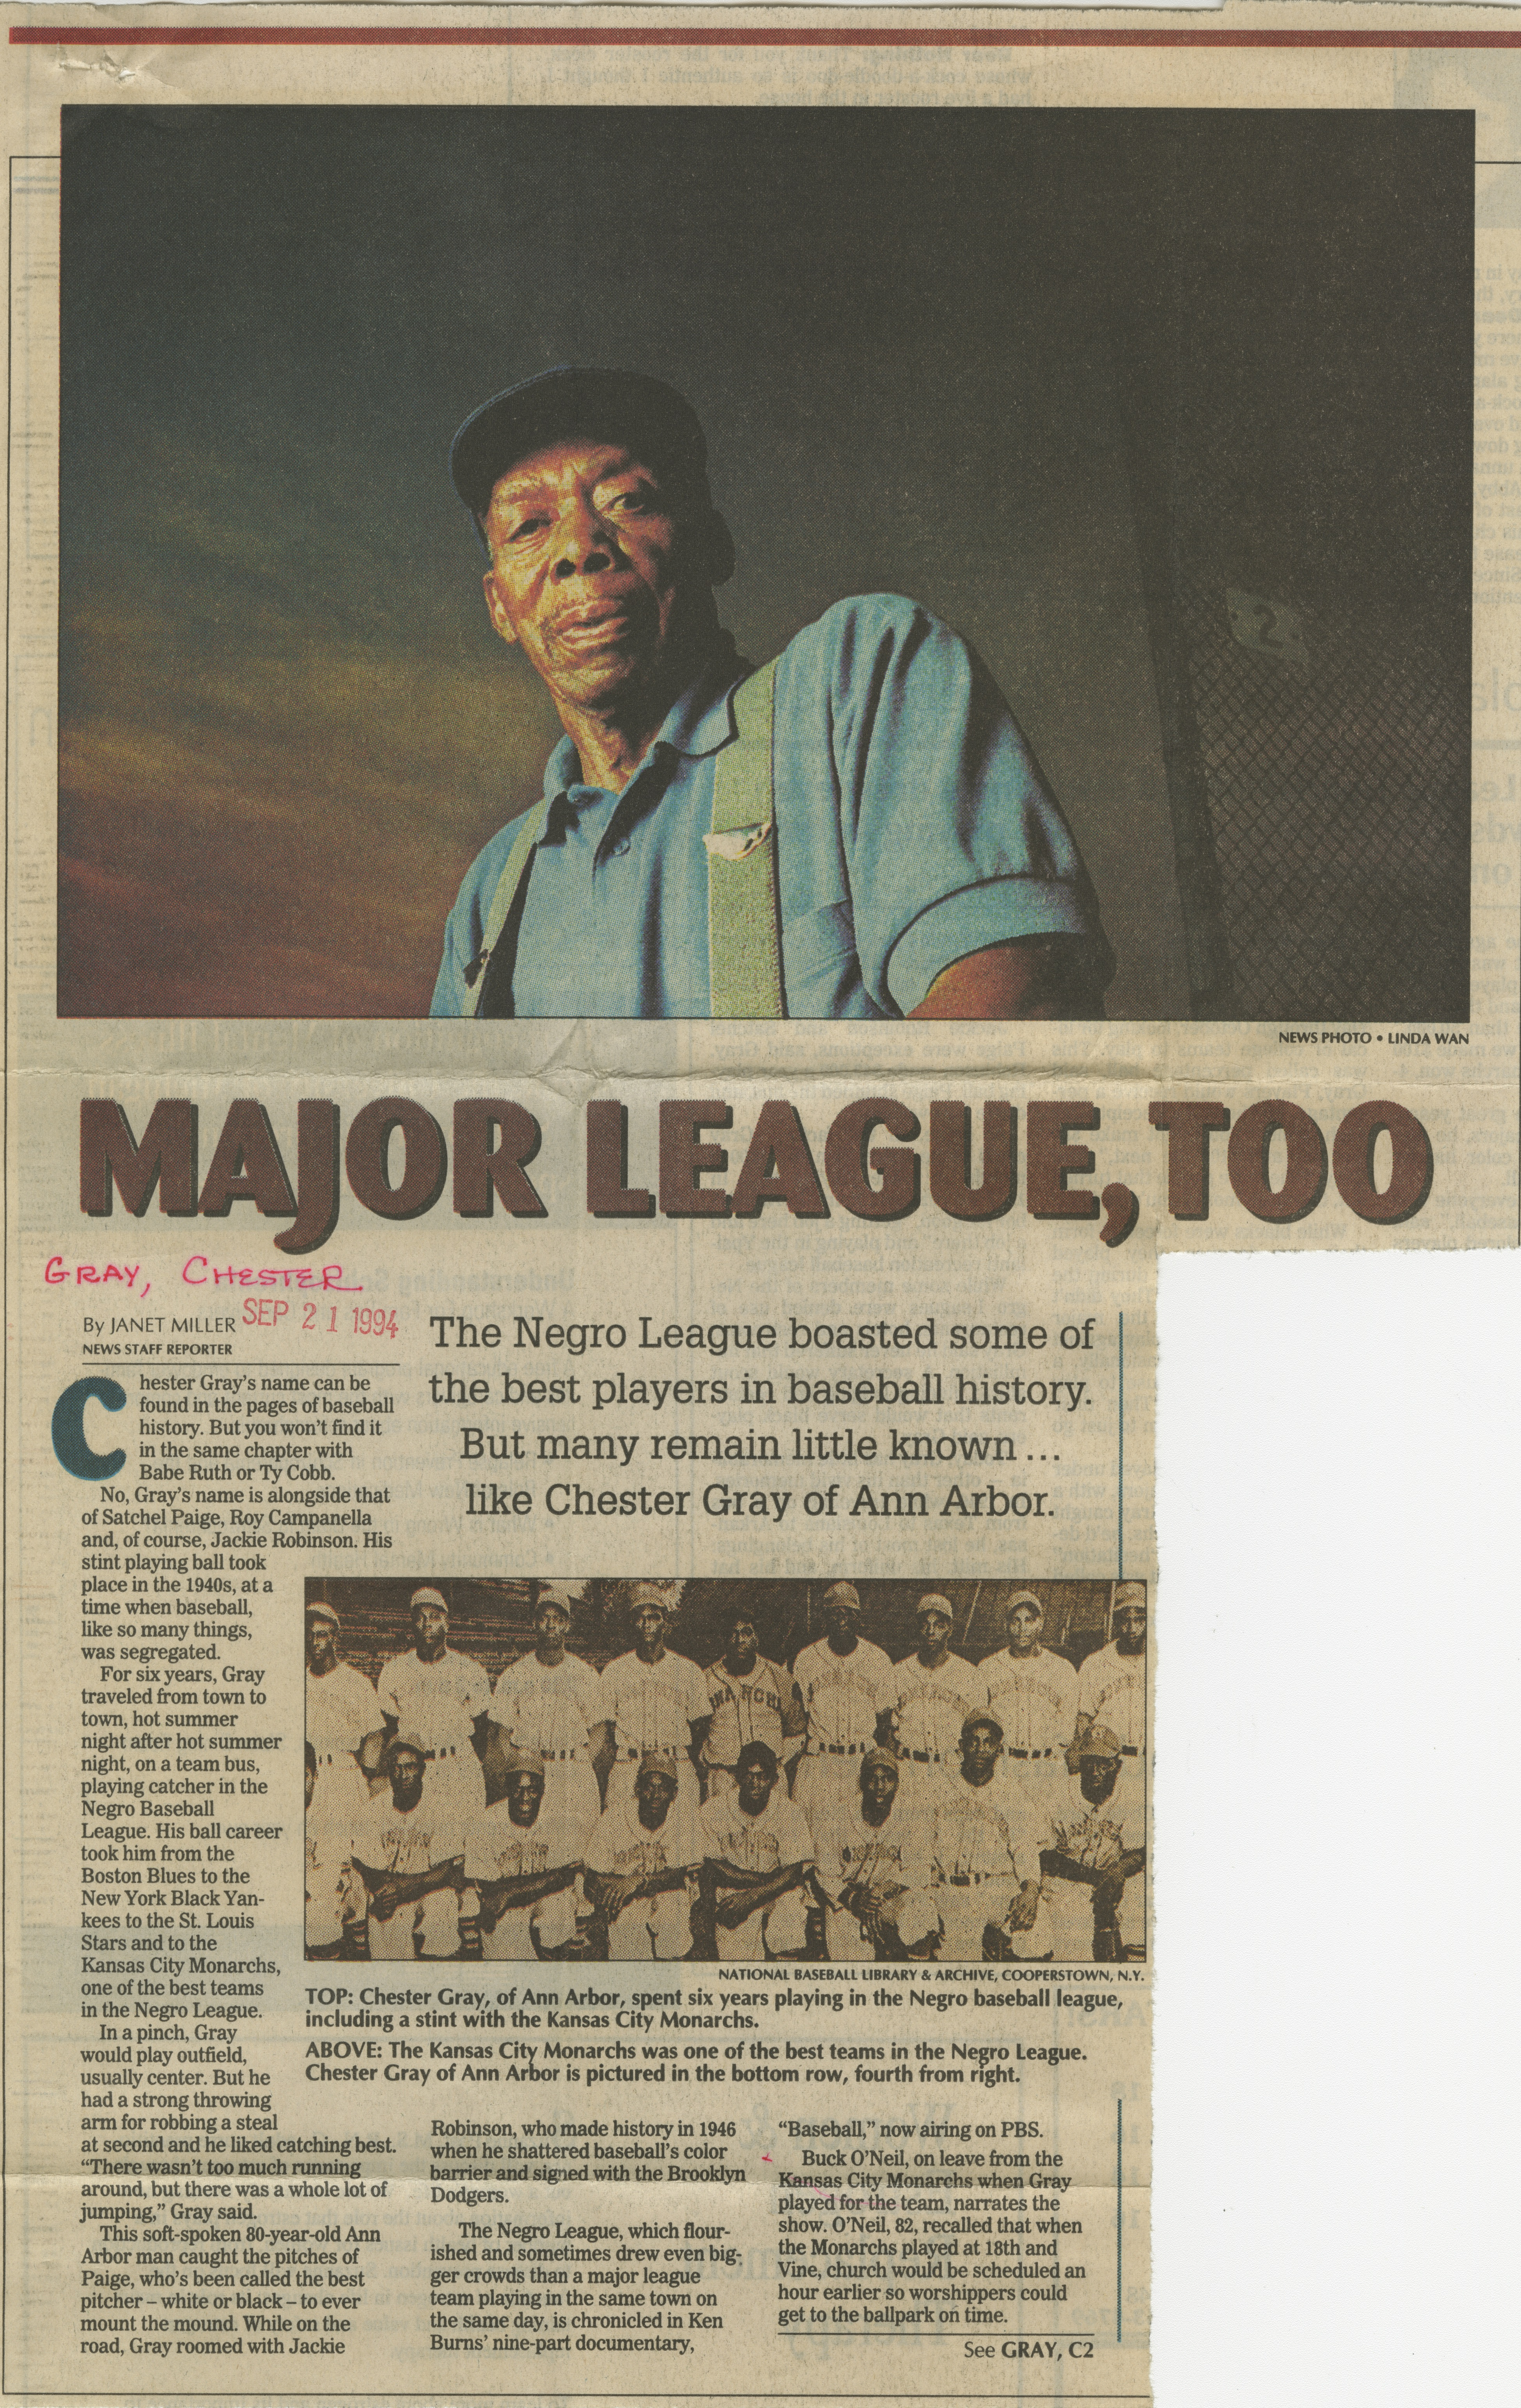 Major League, Too image